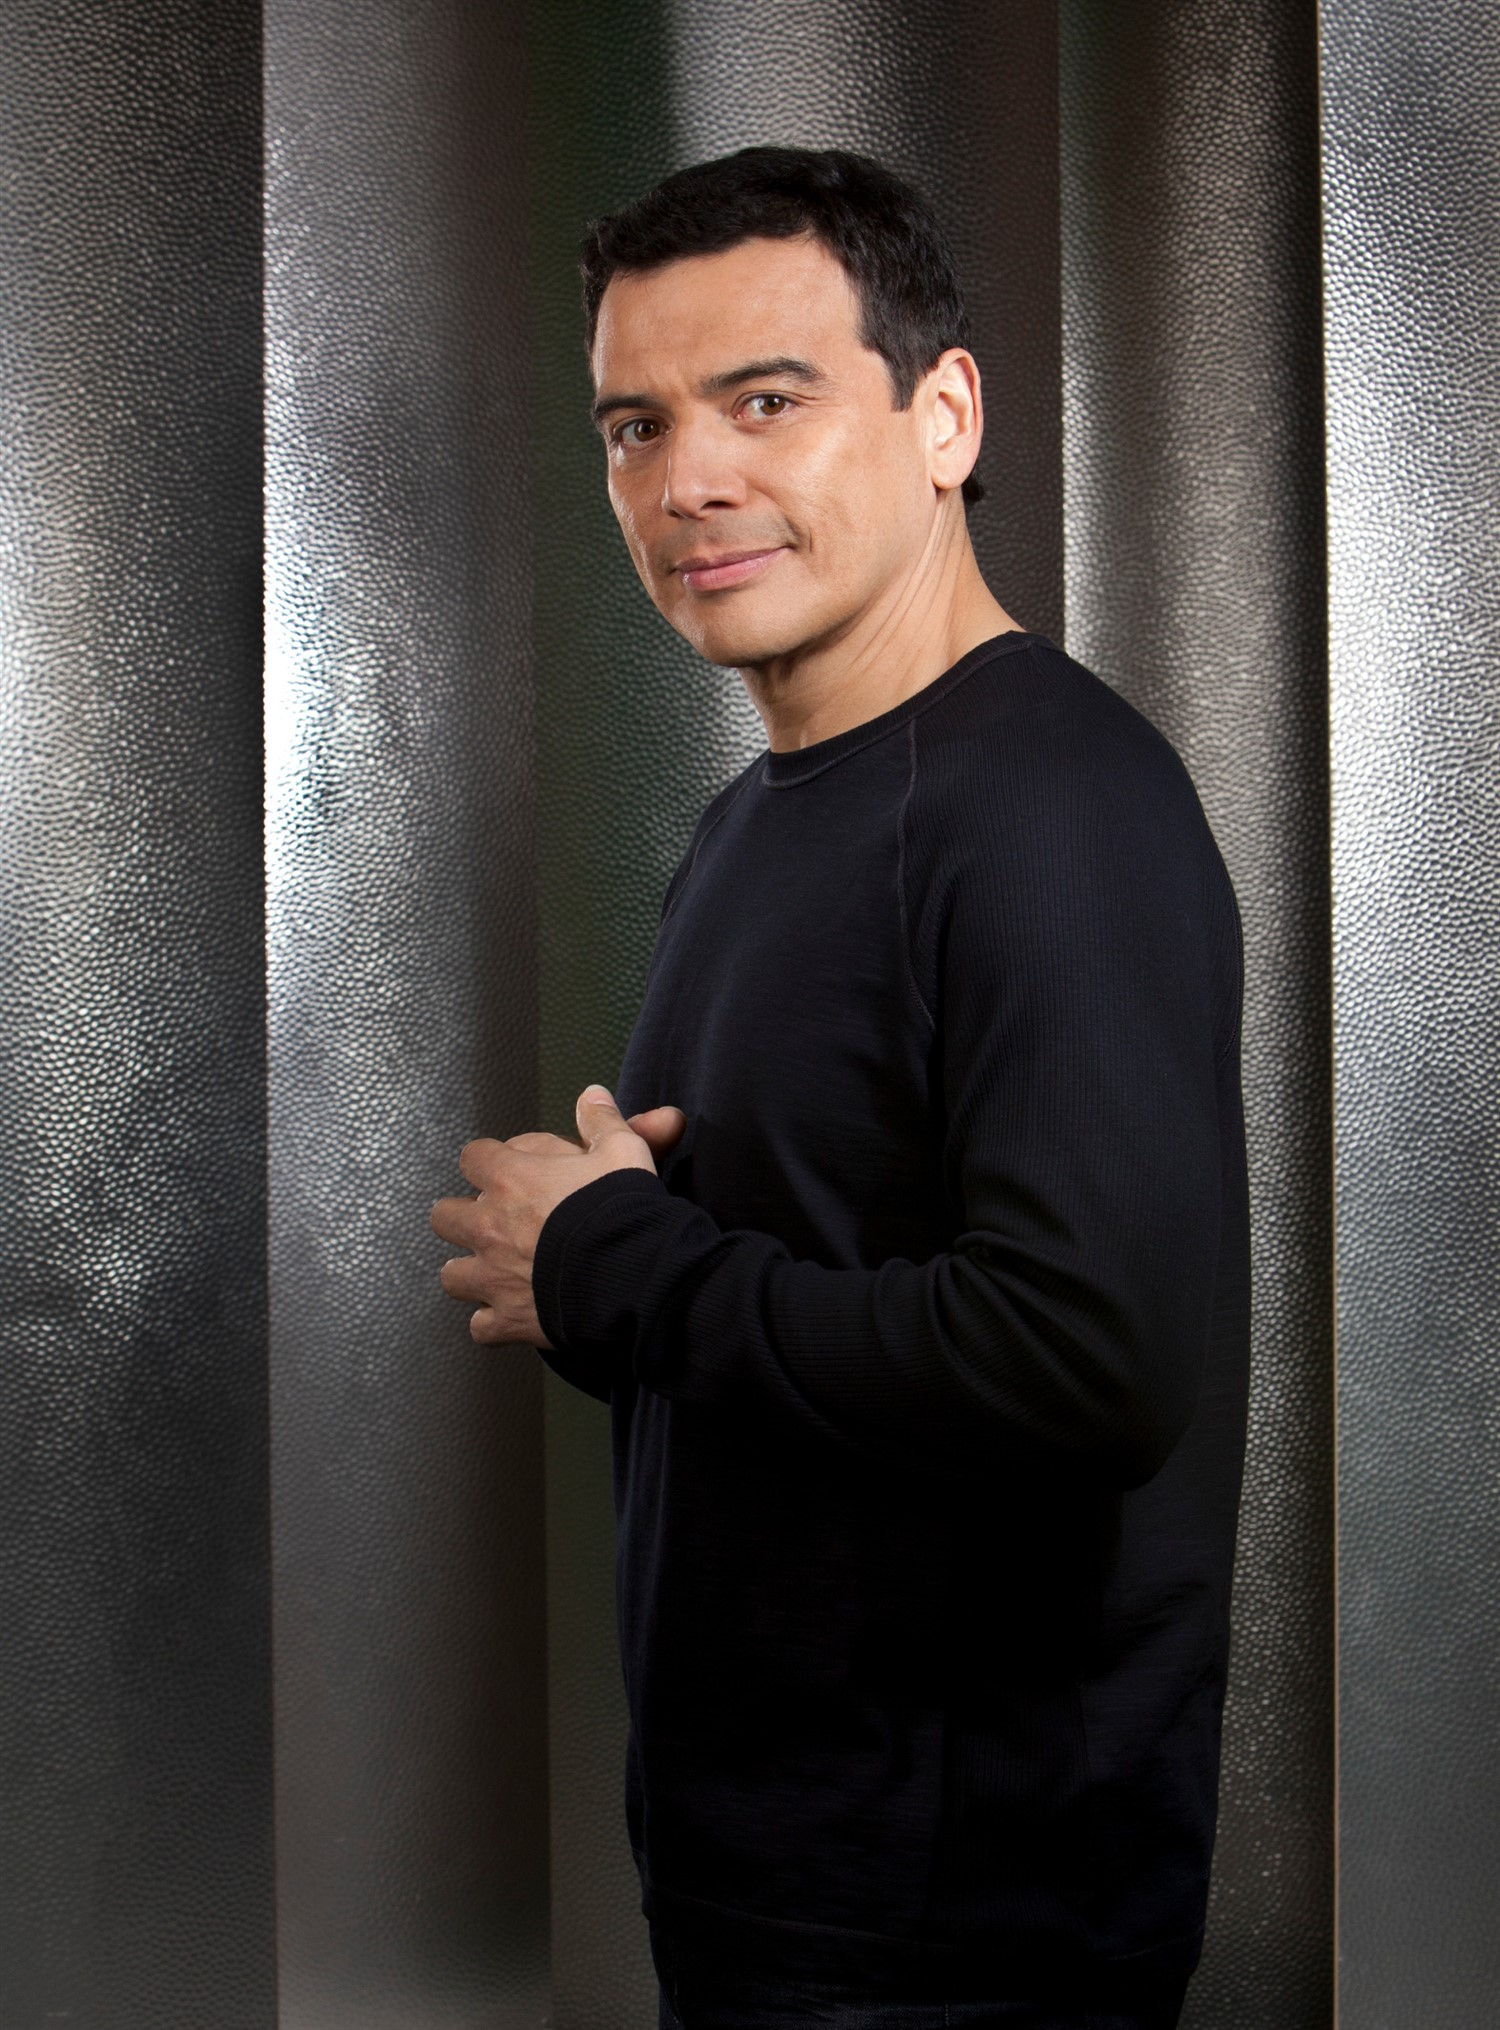 Carlos Mencia Thursday Night Show Headliner on Jan 09, 20:00@Funny Stop Comedy Club - Buy tickets and Get information on Funny Stop funnystop.online